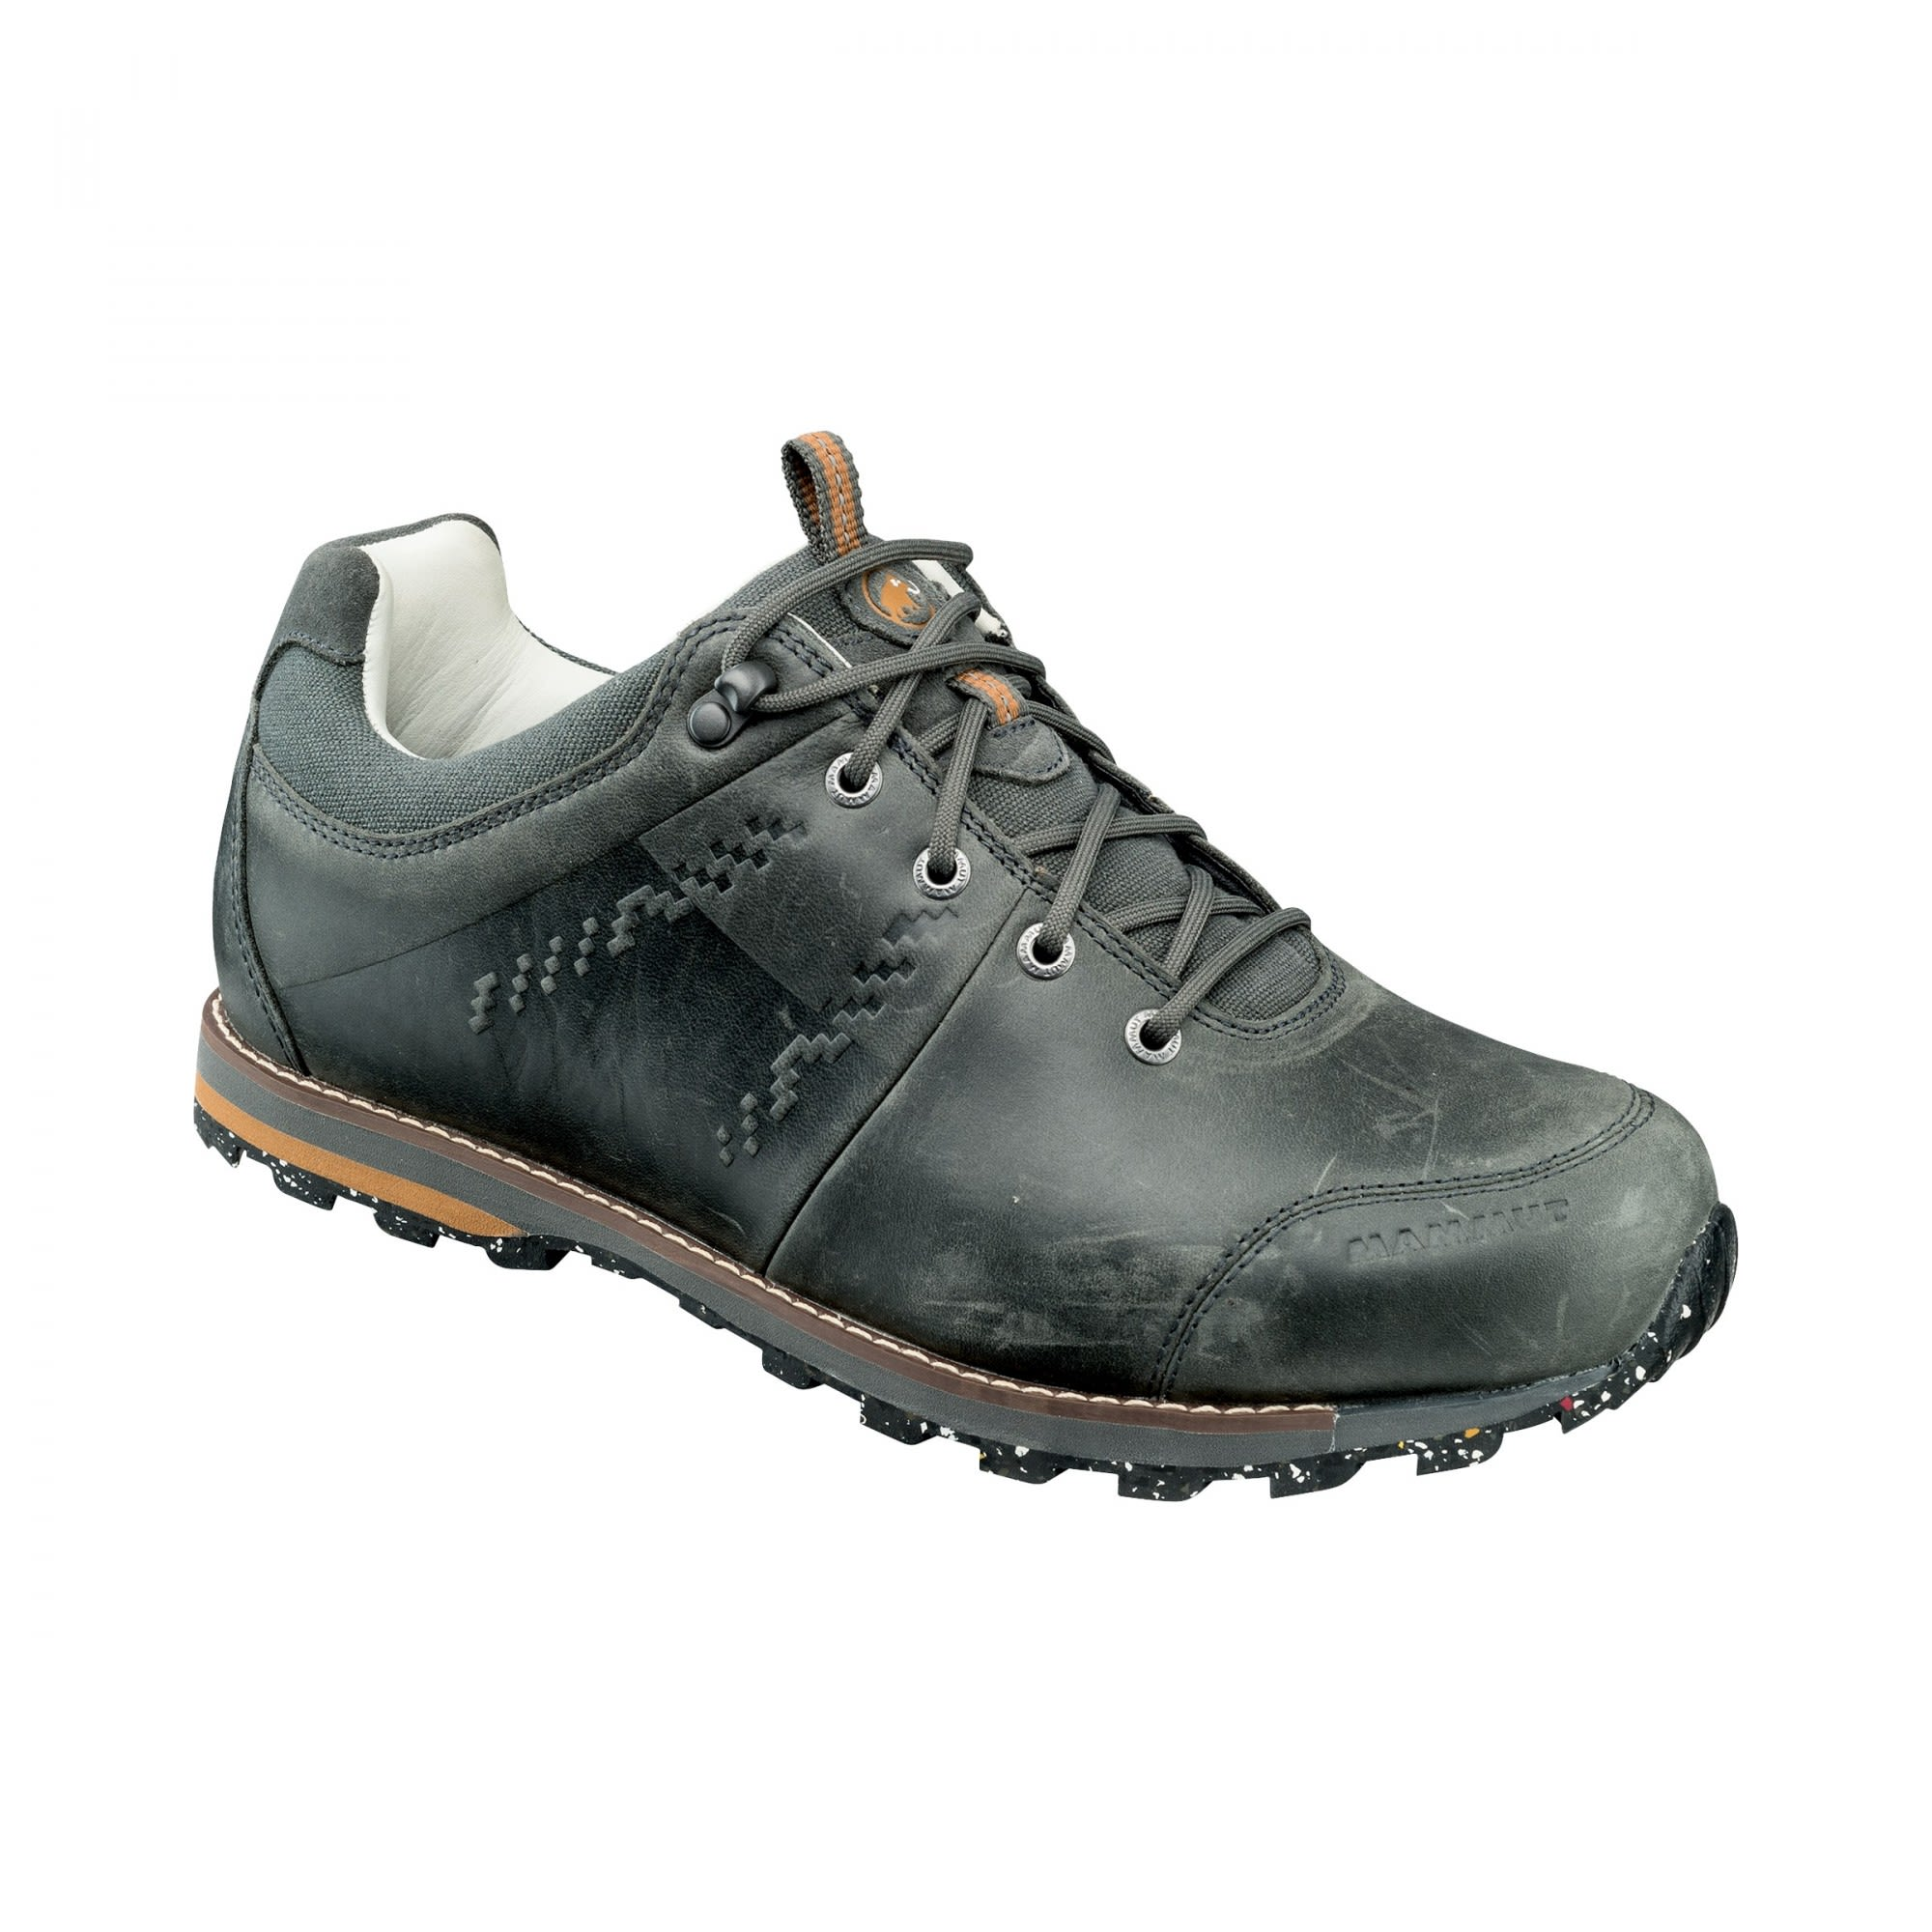 Mammut Alvra Low LTH Grün, Male EU 42 2/3 -Farbe Dark Graphite -Timber, 42 2/3